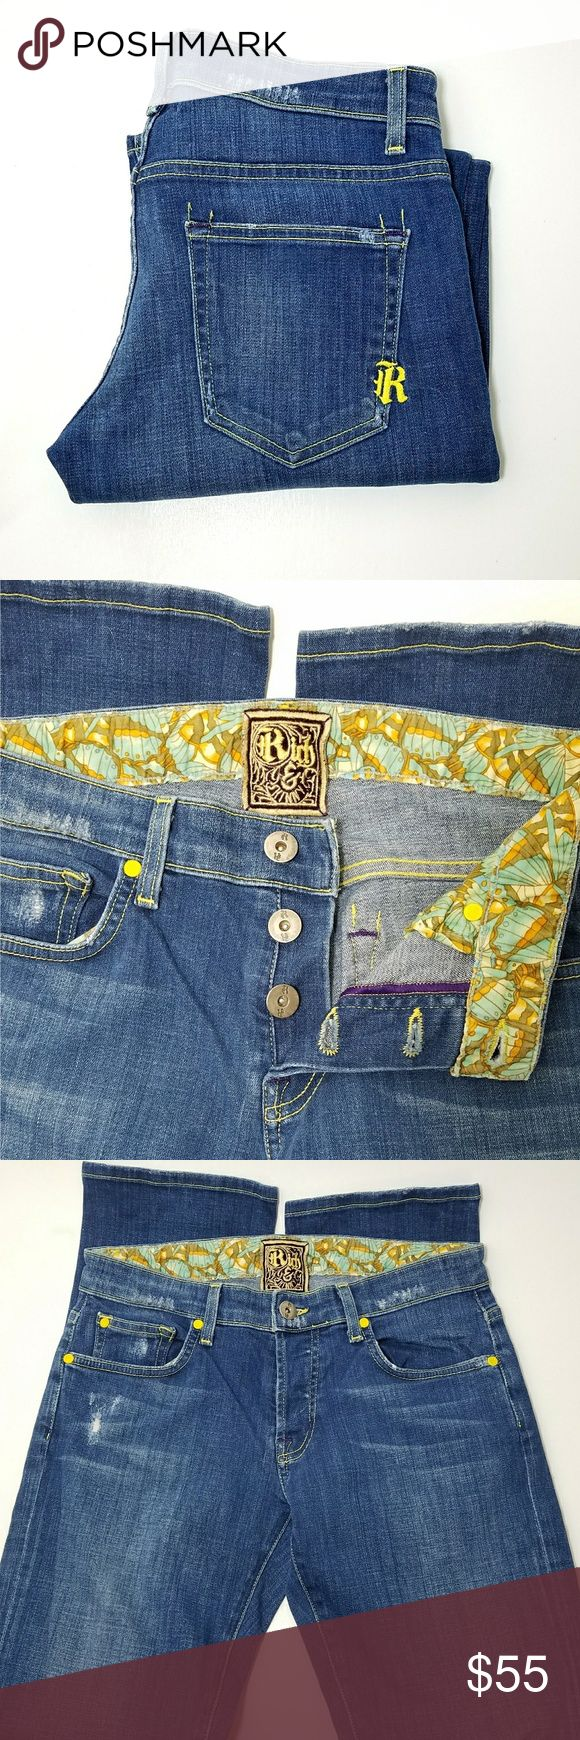 Rich & Skinny Button Fly Jeans Rich & Skinny Button Fly straight leg Jeans. Factory wishkering and distressing. 5 pockets, belt loops. EUC  Waist 15 Rise 8 Inseam 31  No trade or P.P. Reasonable offers considered Bundle Discount Rich & Skinny Jeans Skinny